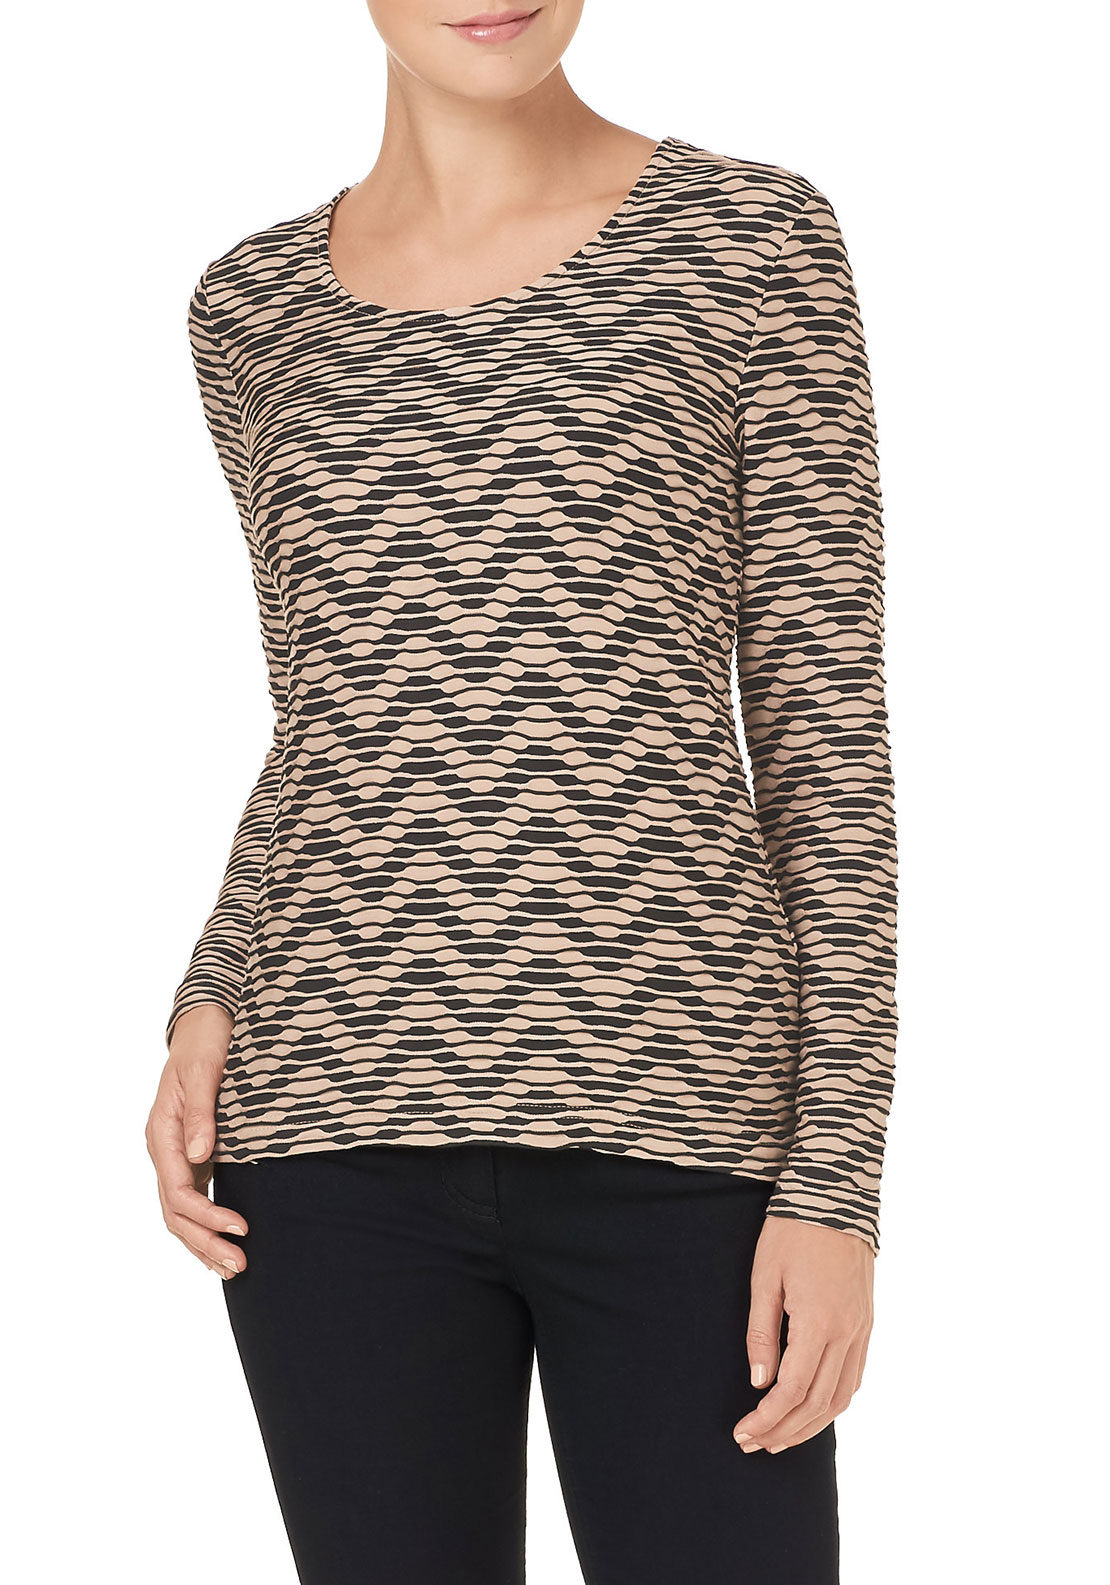 Gerry Weber Textured Print Top, Beige & Black